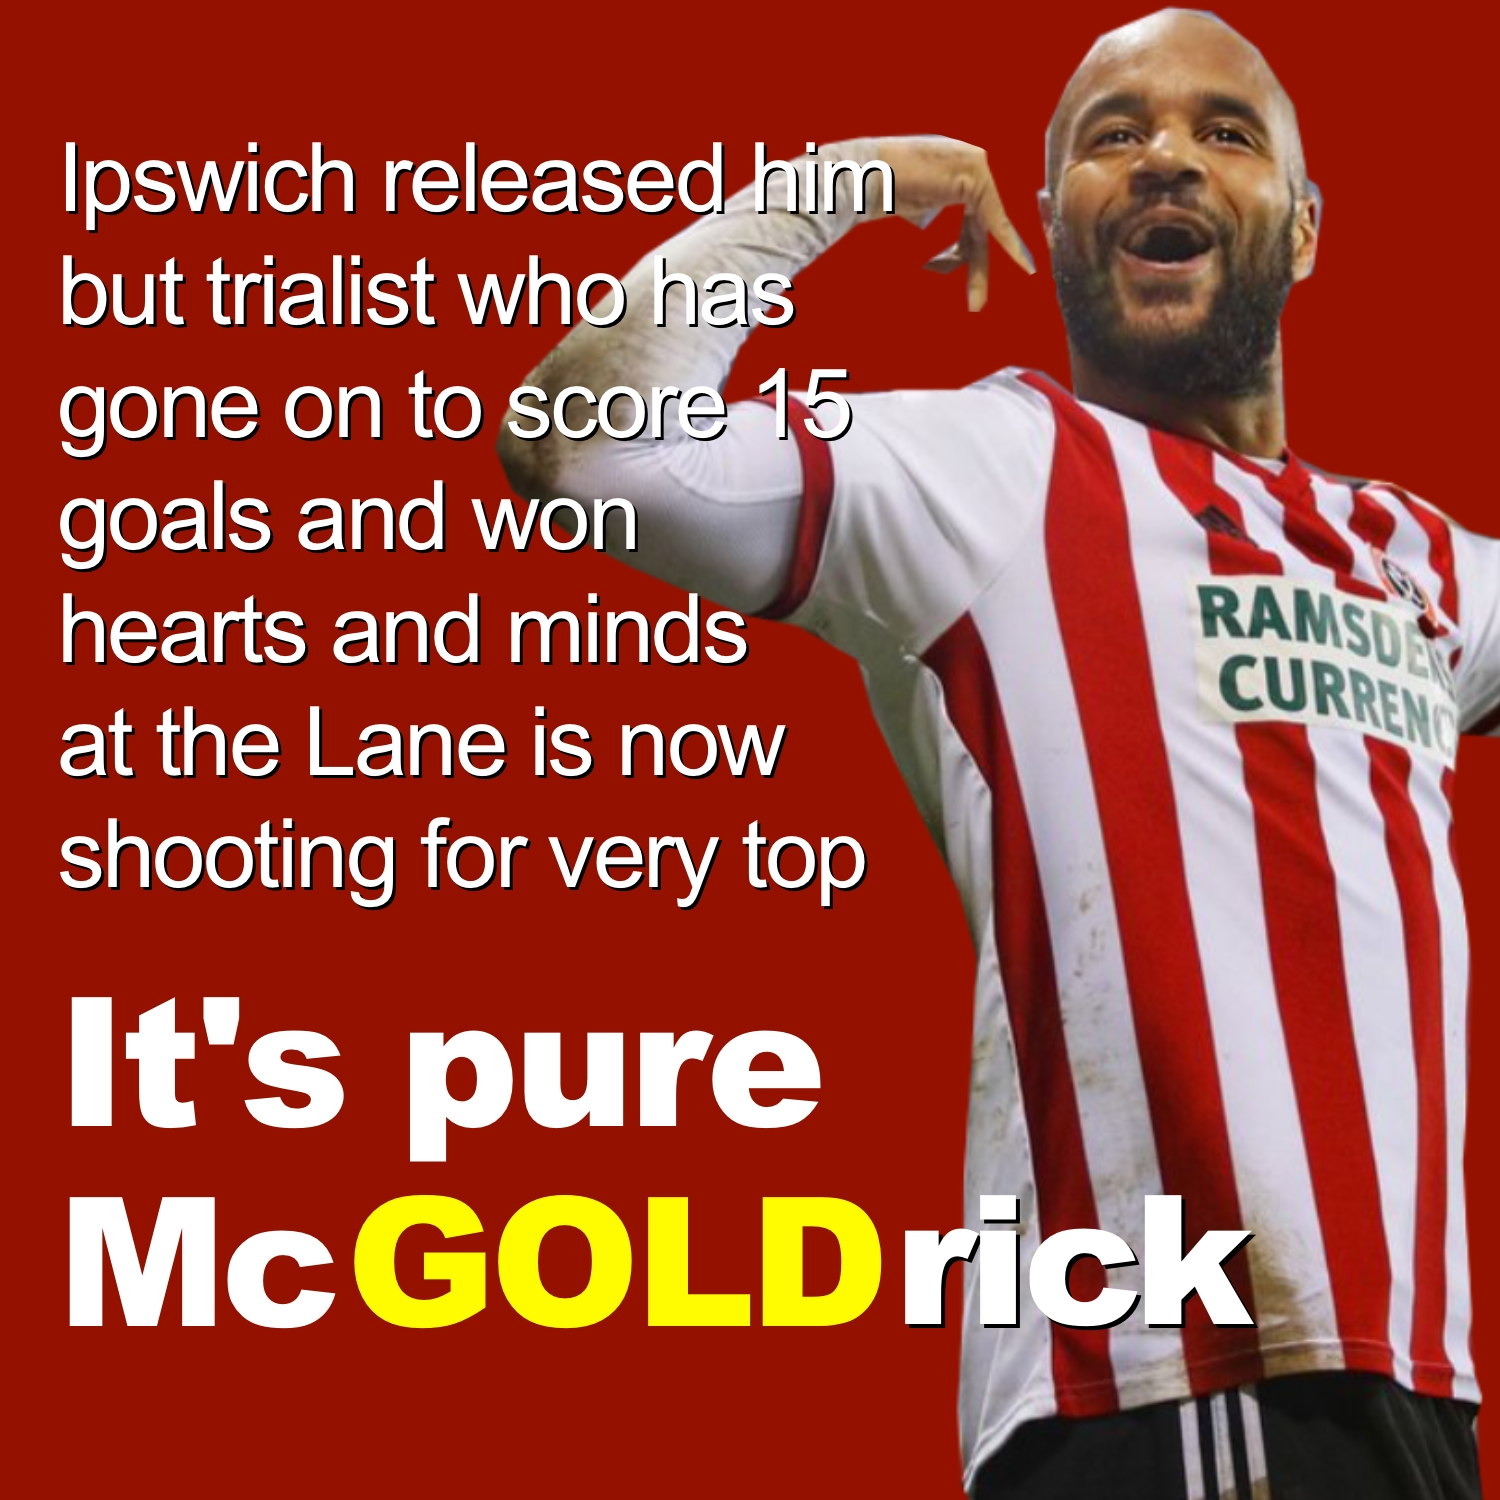 Sheffield United striker David McGoldrick is having the season of his life after being released last summer. Now the 15-goal hit-man is shooting for the very top for the Blades against his old club.